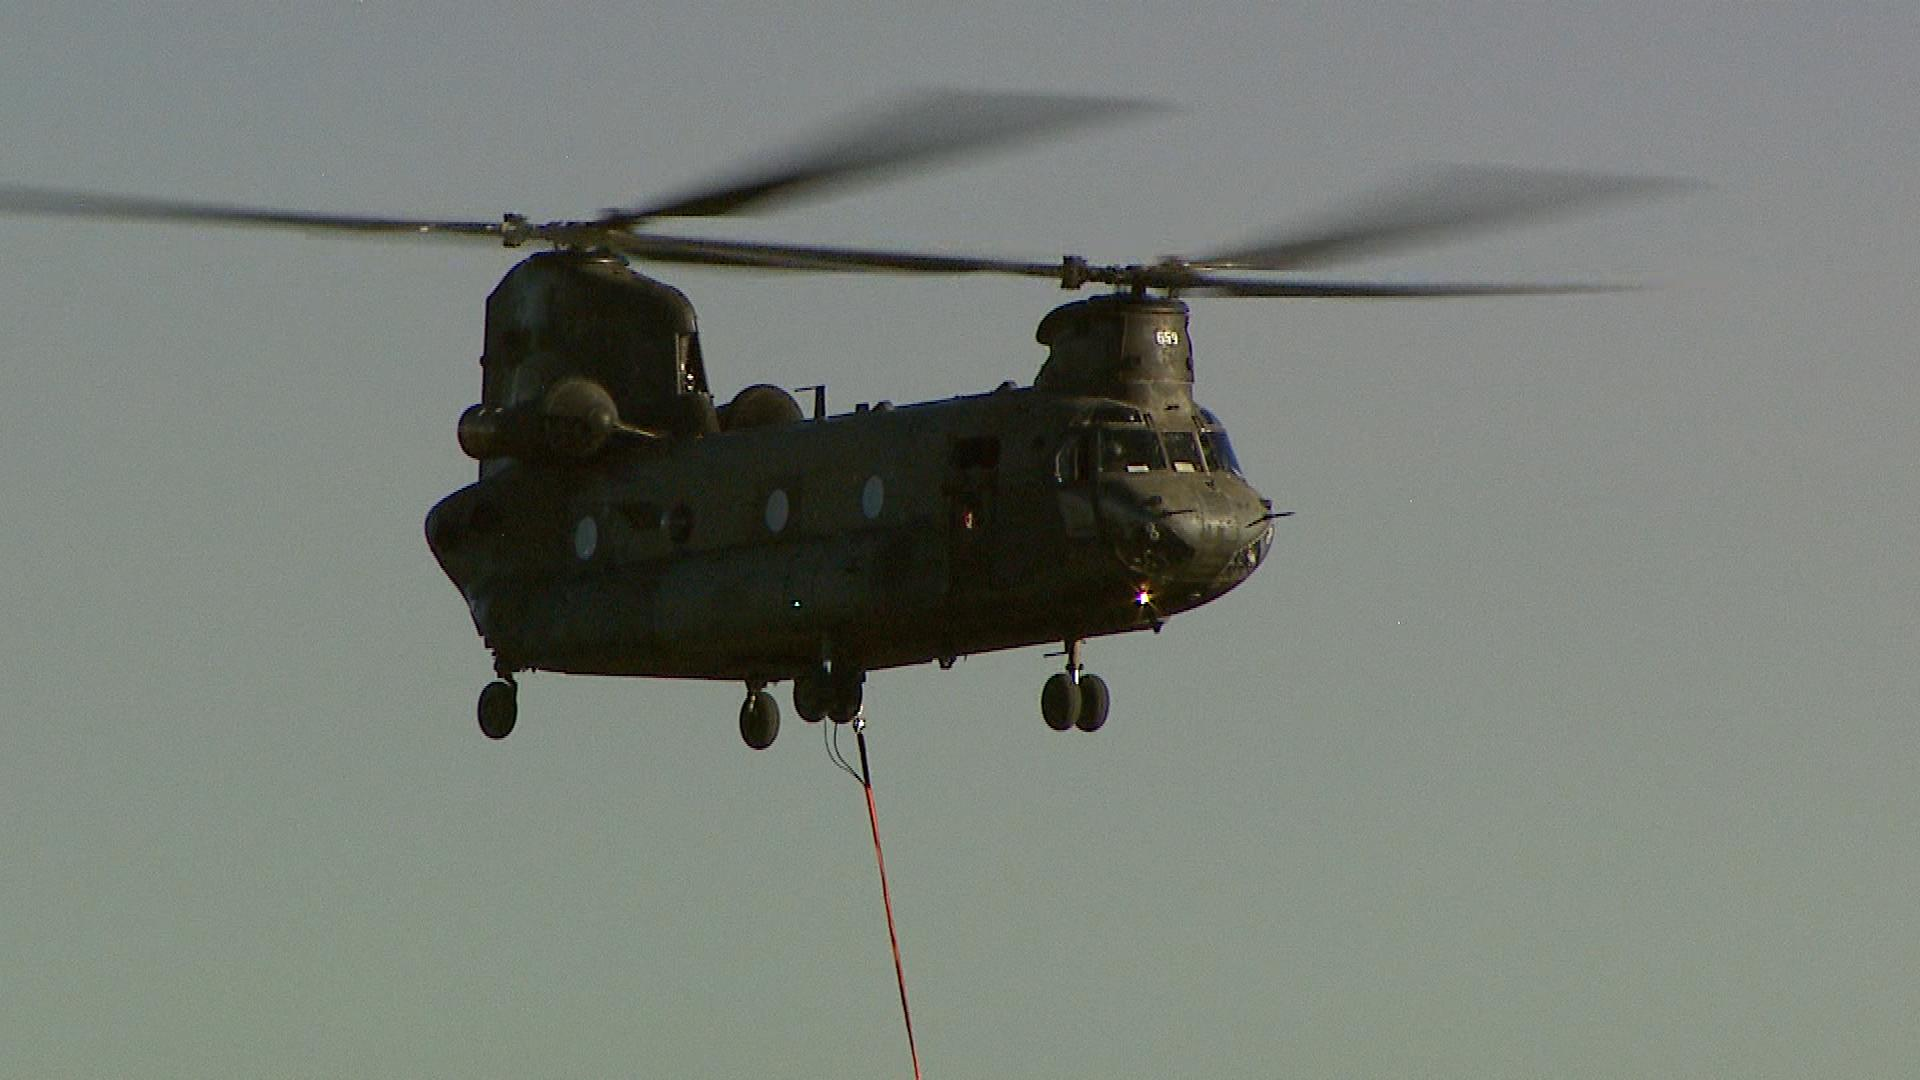 A Chinook helicopter from Fort Carson (credit: CBS)